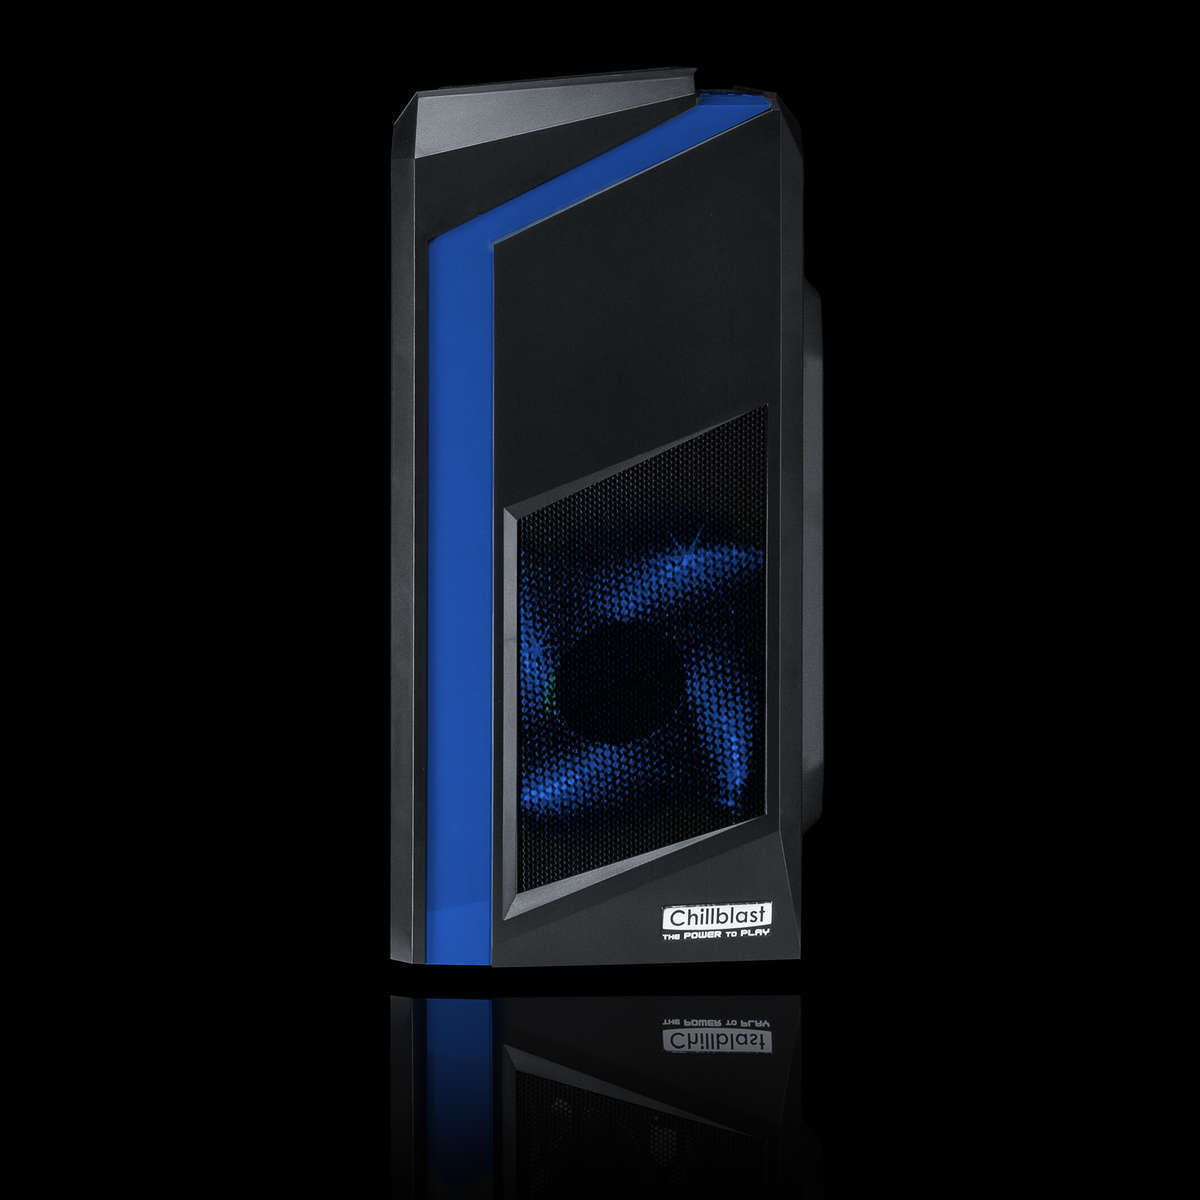 Chillblast Fusion Outlaw Gaming PC - Blue